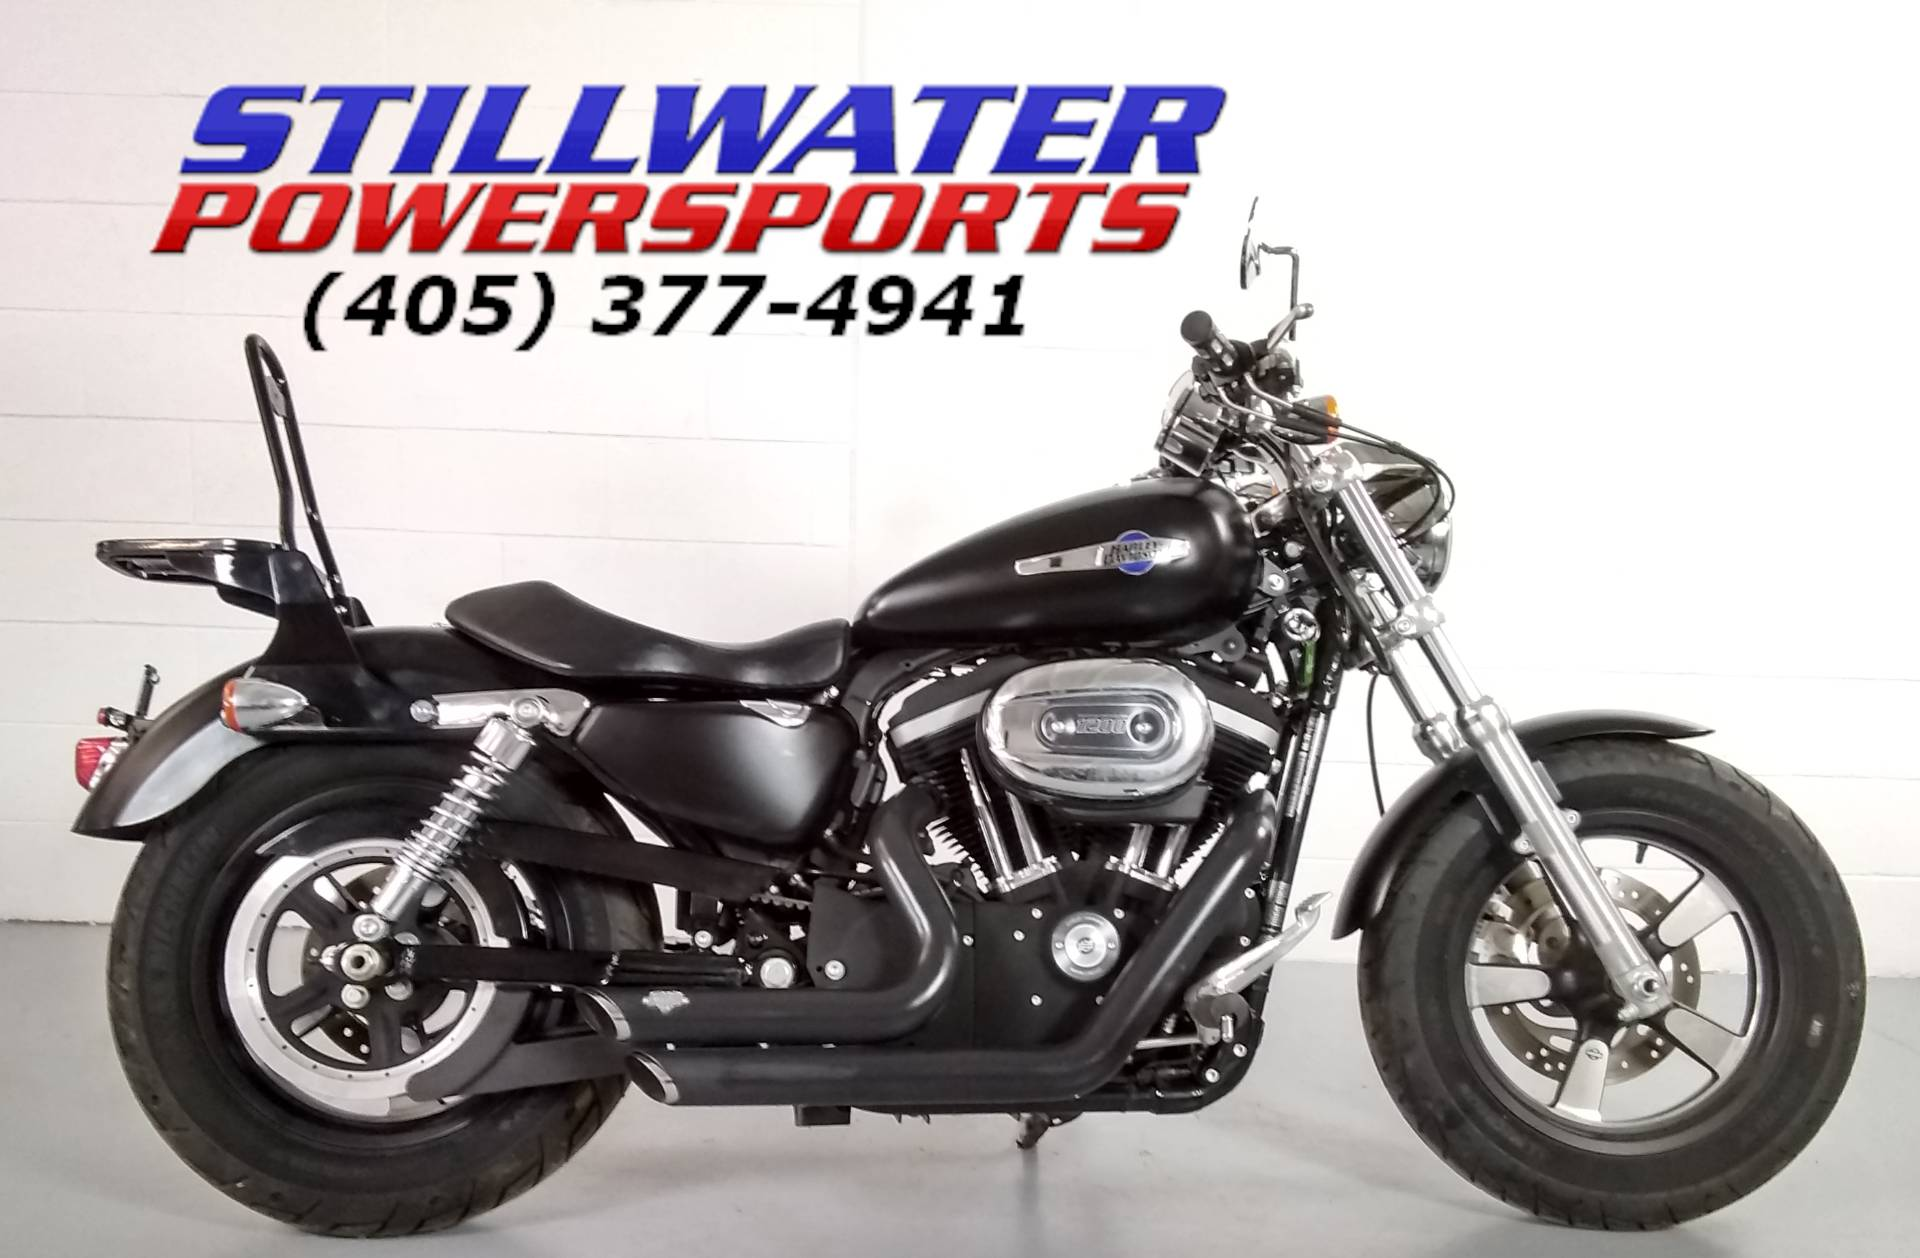 2013 Harley-Davidson Sportster® 1200 Custom in Stillwater, Oklahoma - Photo 1